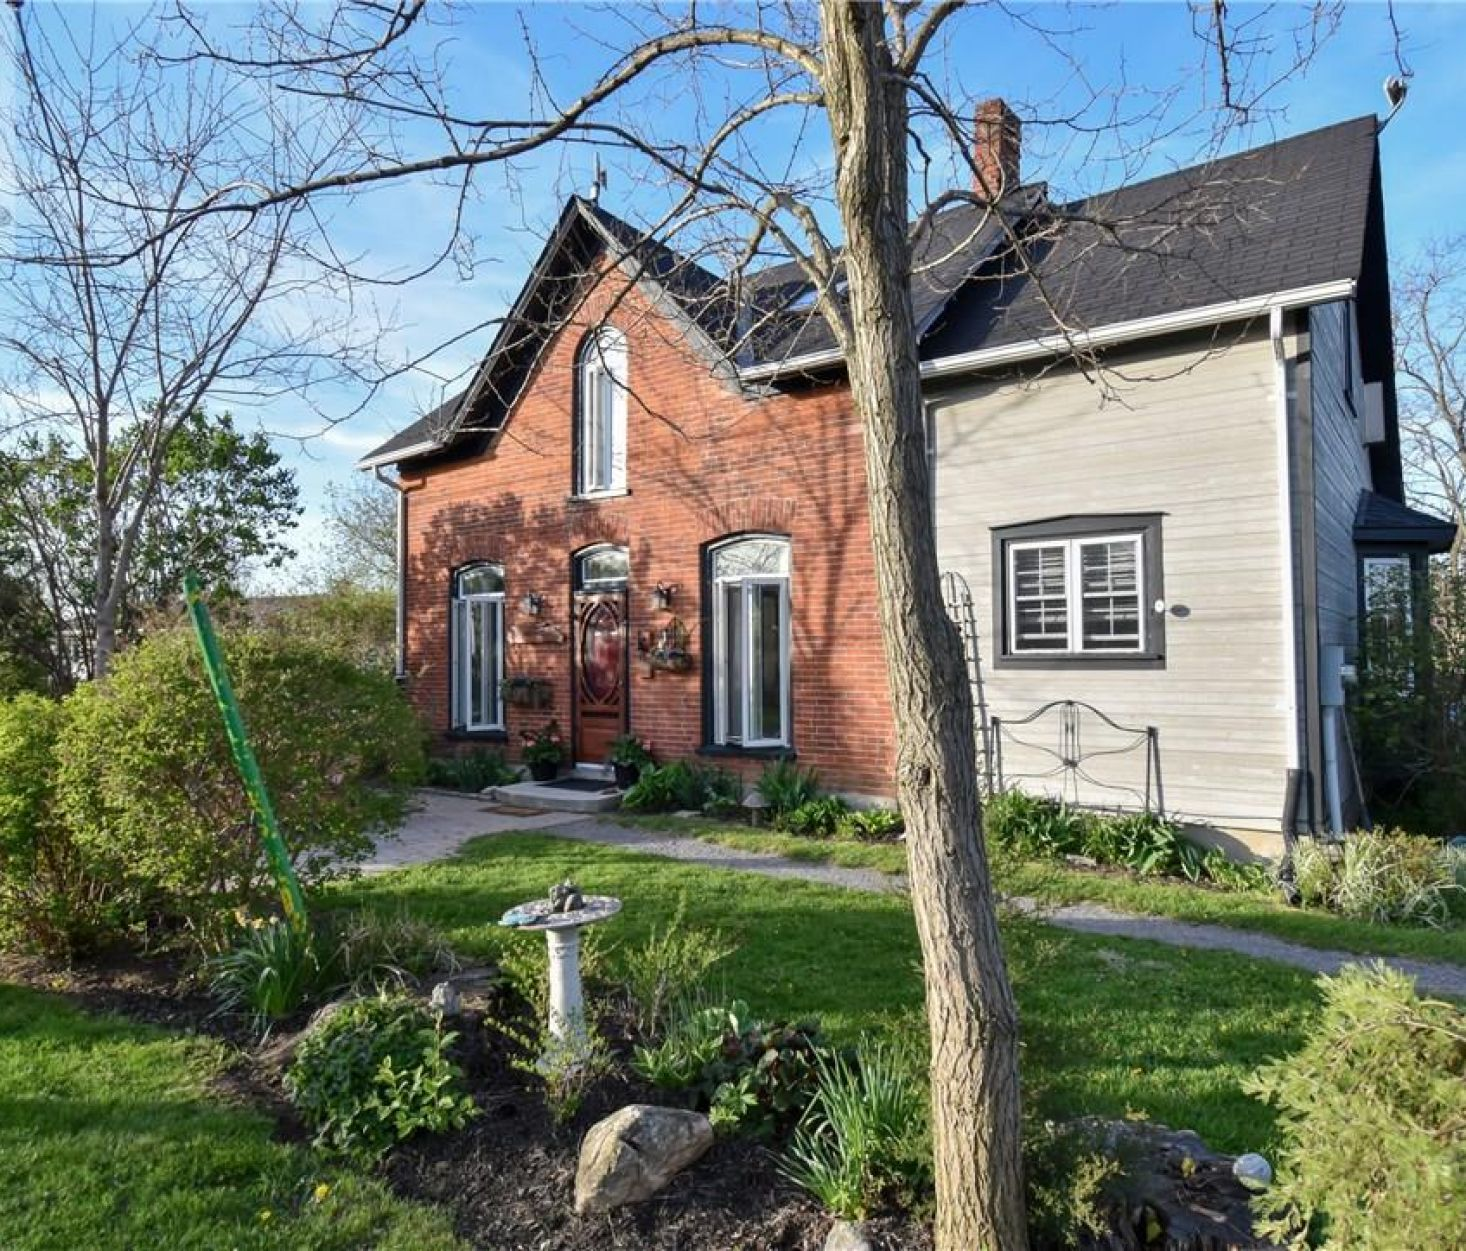 45 ST. PHILLIP STREET, Prince Edward County****SOLD****